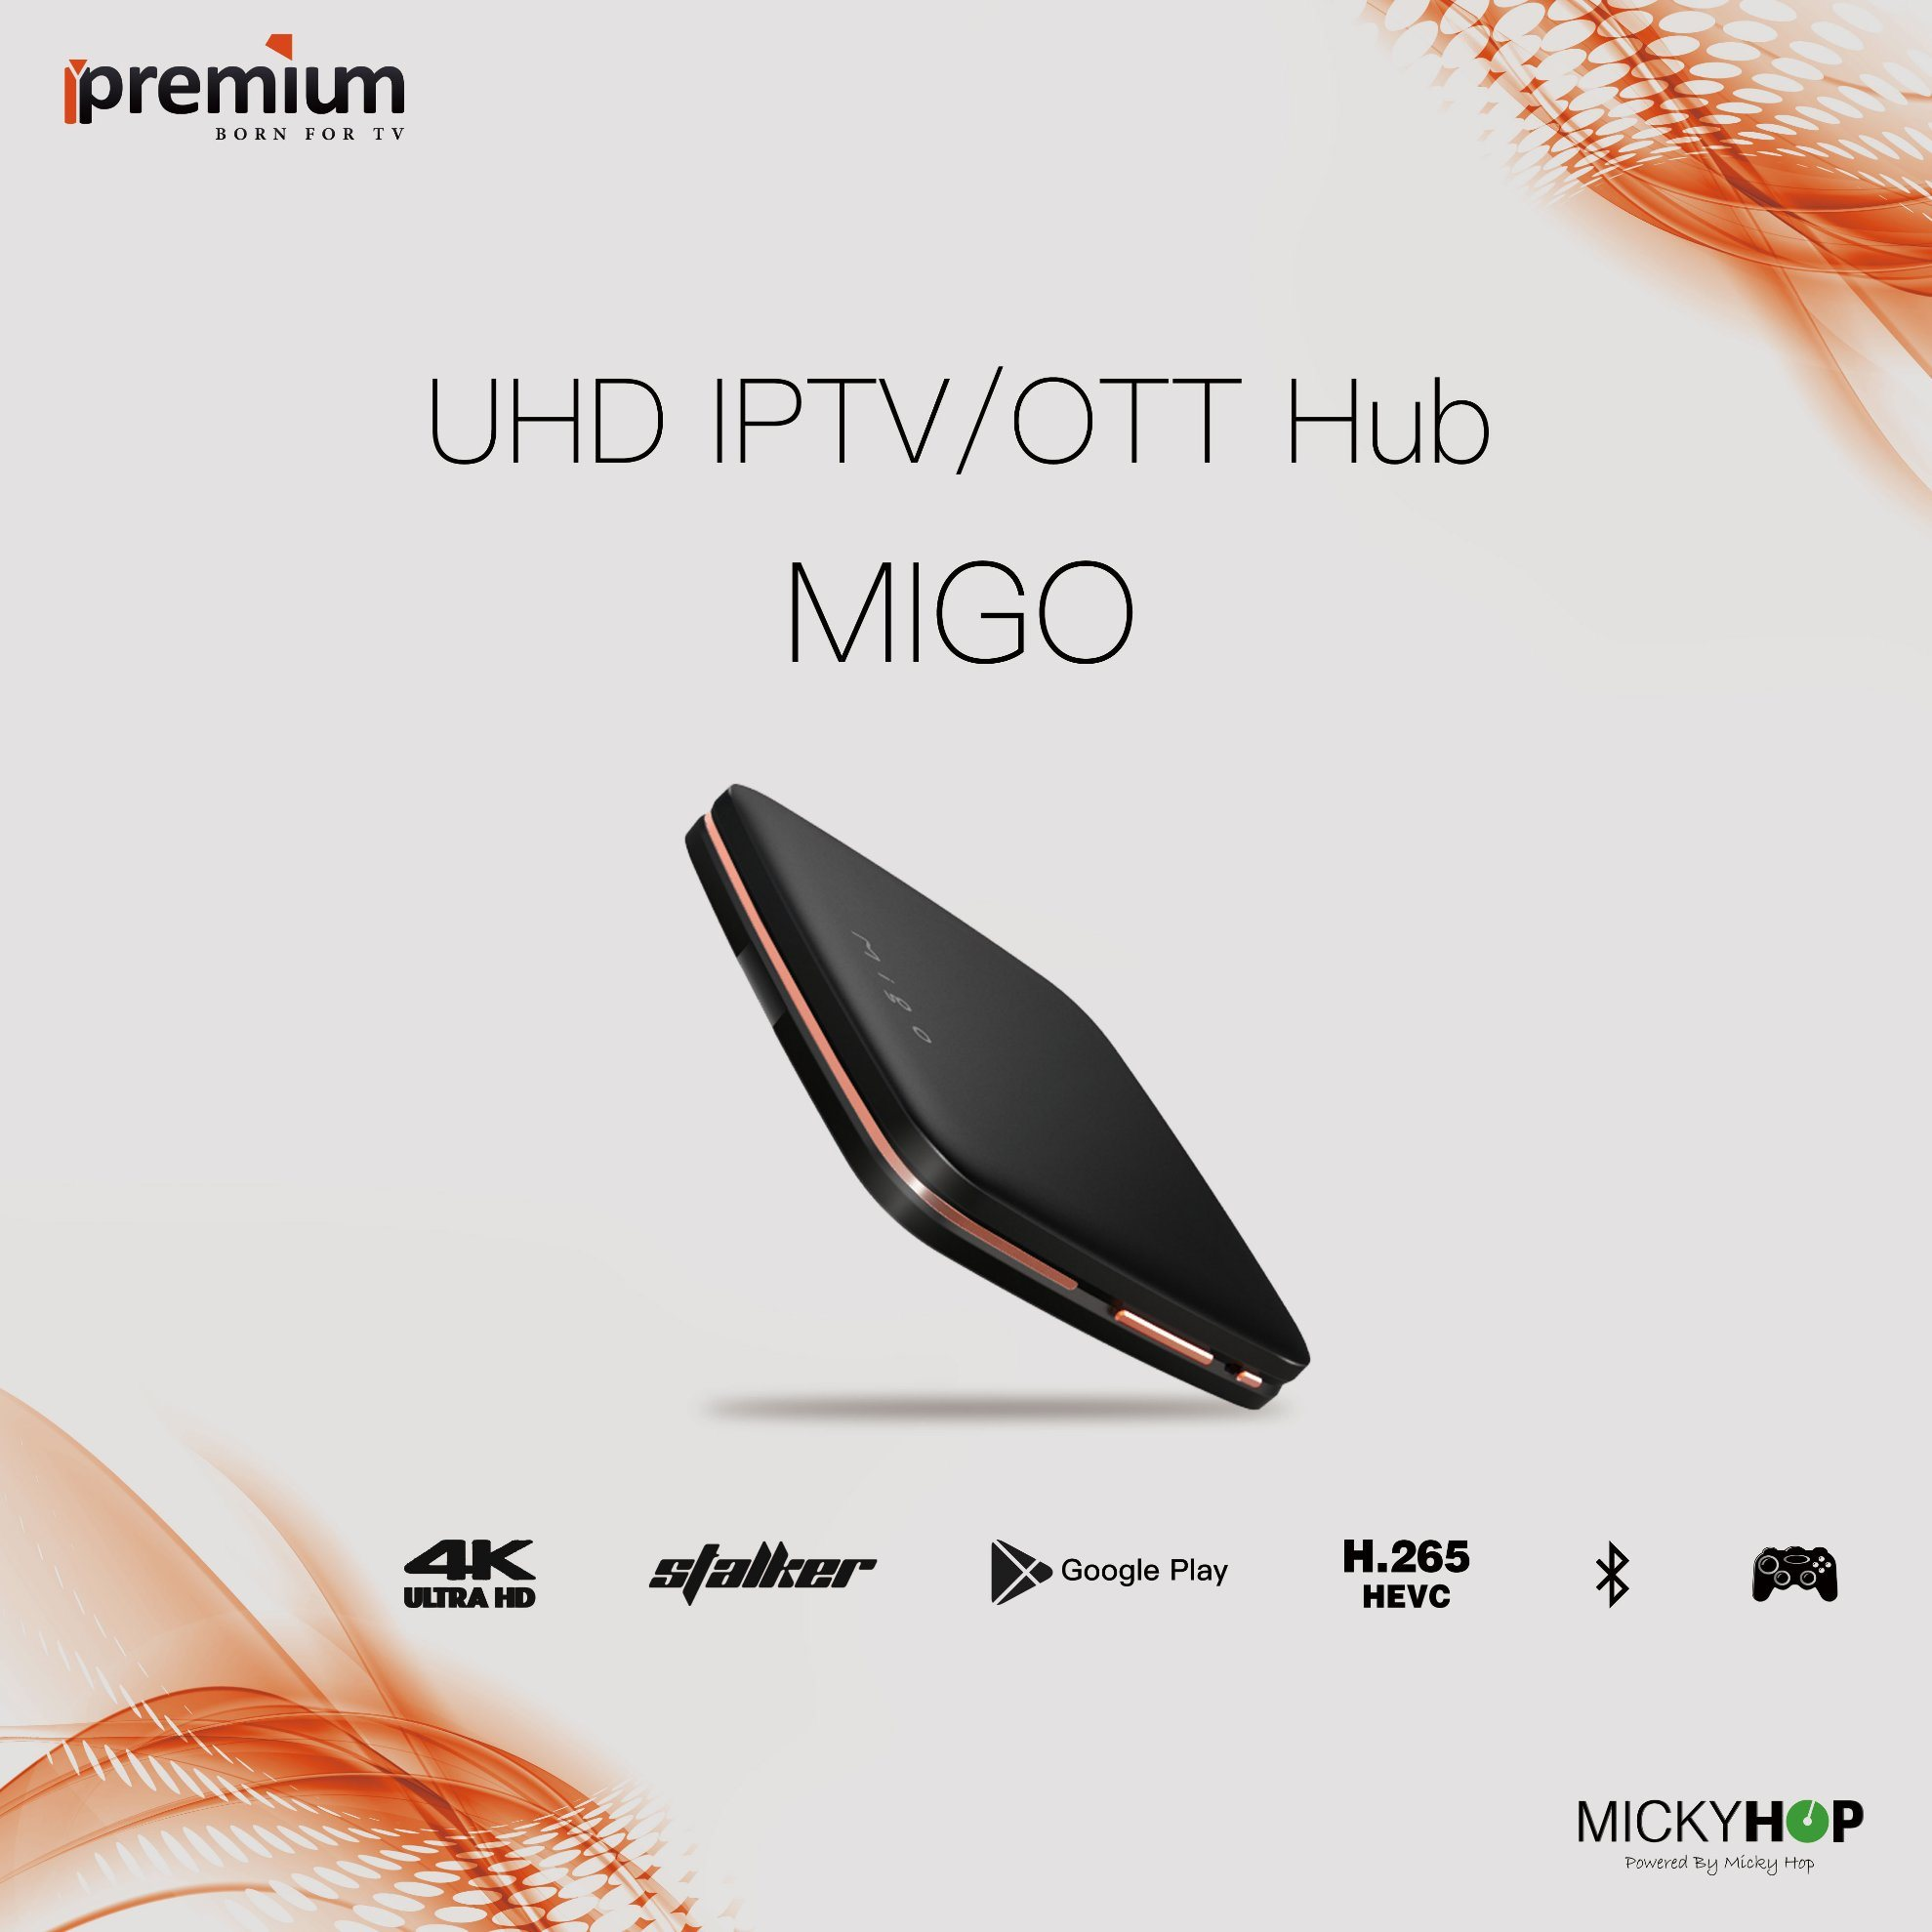 Ipremium Migo Android 6.0 4K Google Play Store 1GB RAM+ 8GB ROM Middleware Stalker IPTV Streaming Box